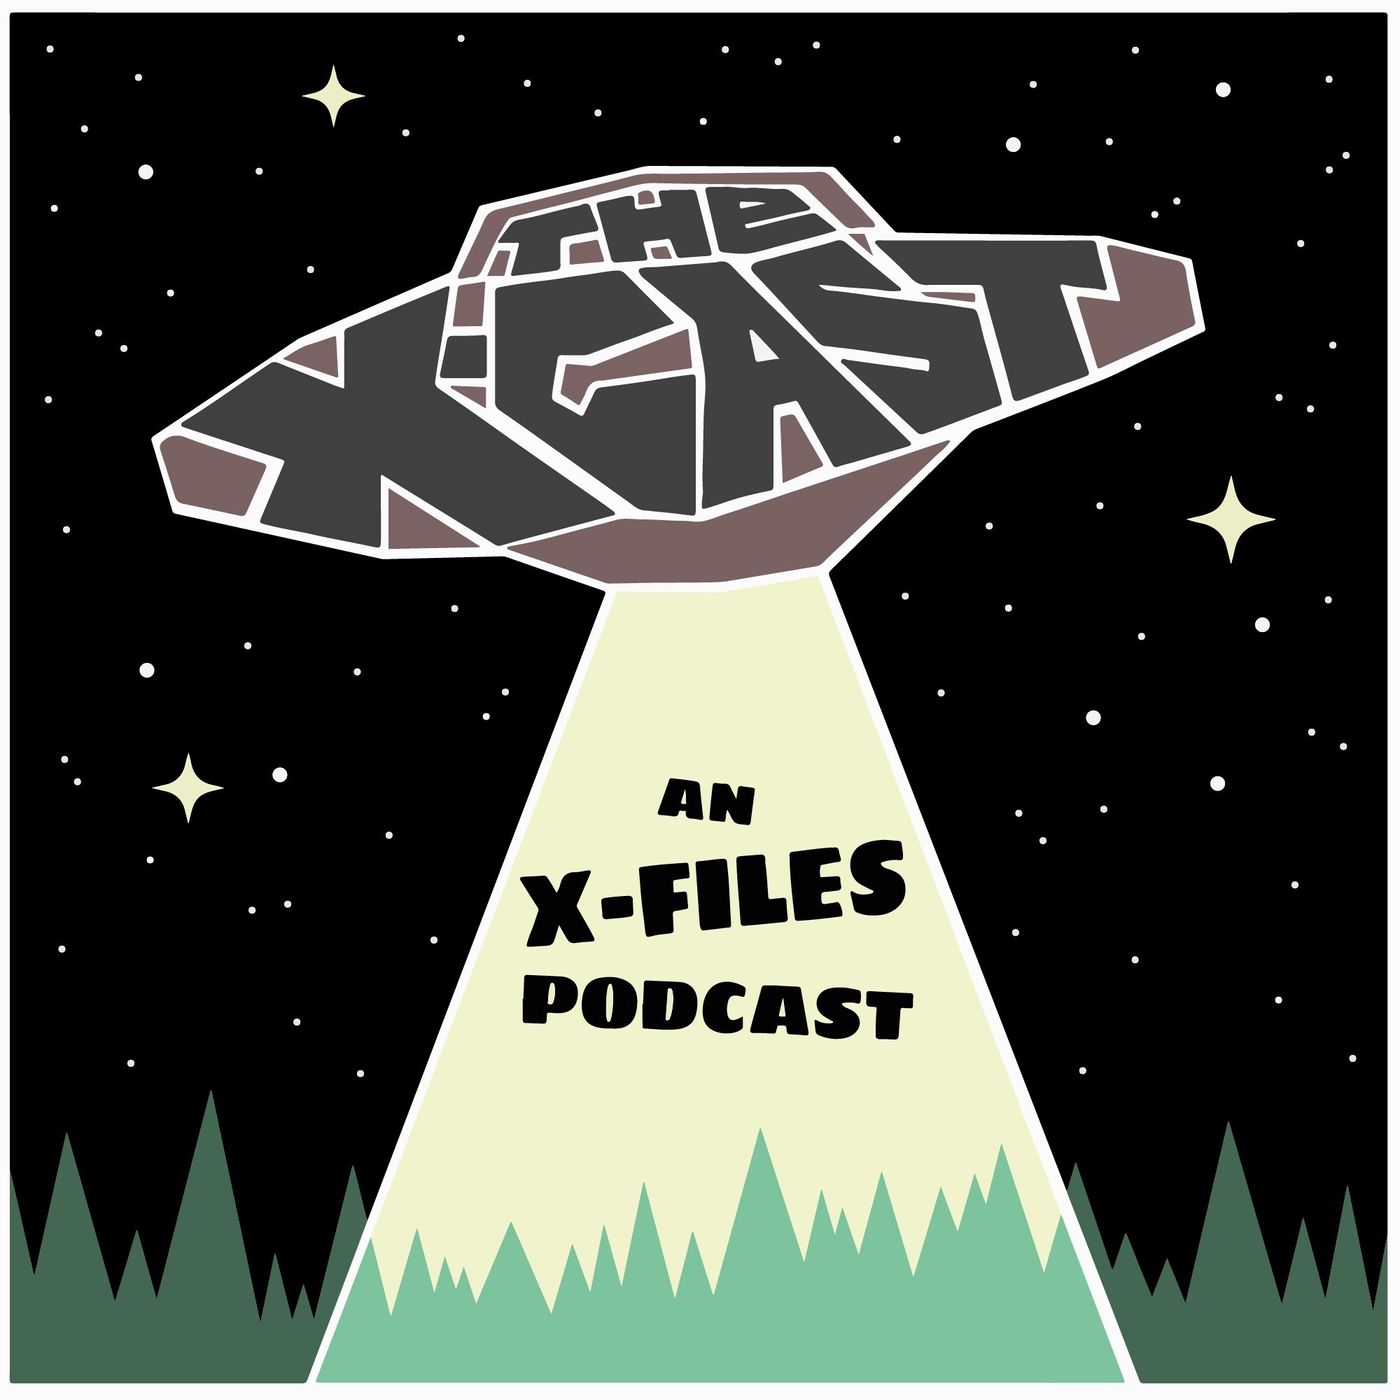 310. Patron Roundtable #7 - Re-Appreciating X-Files